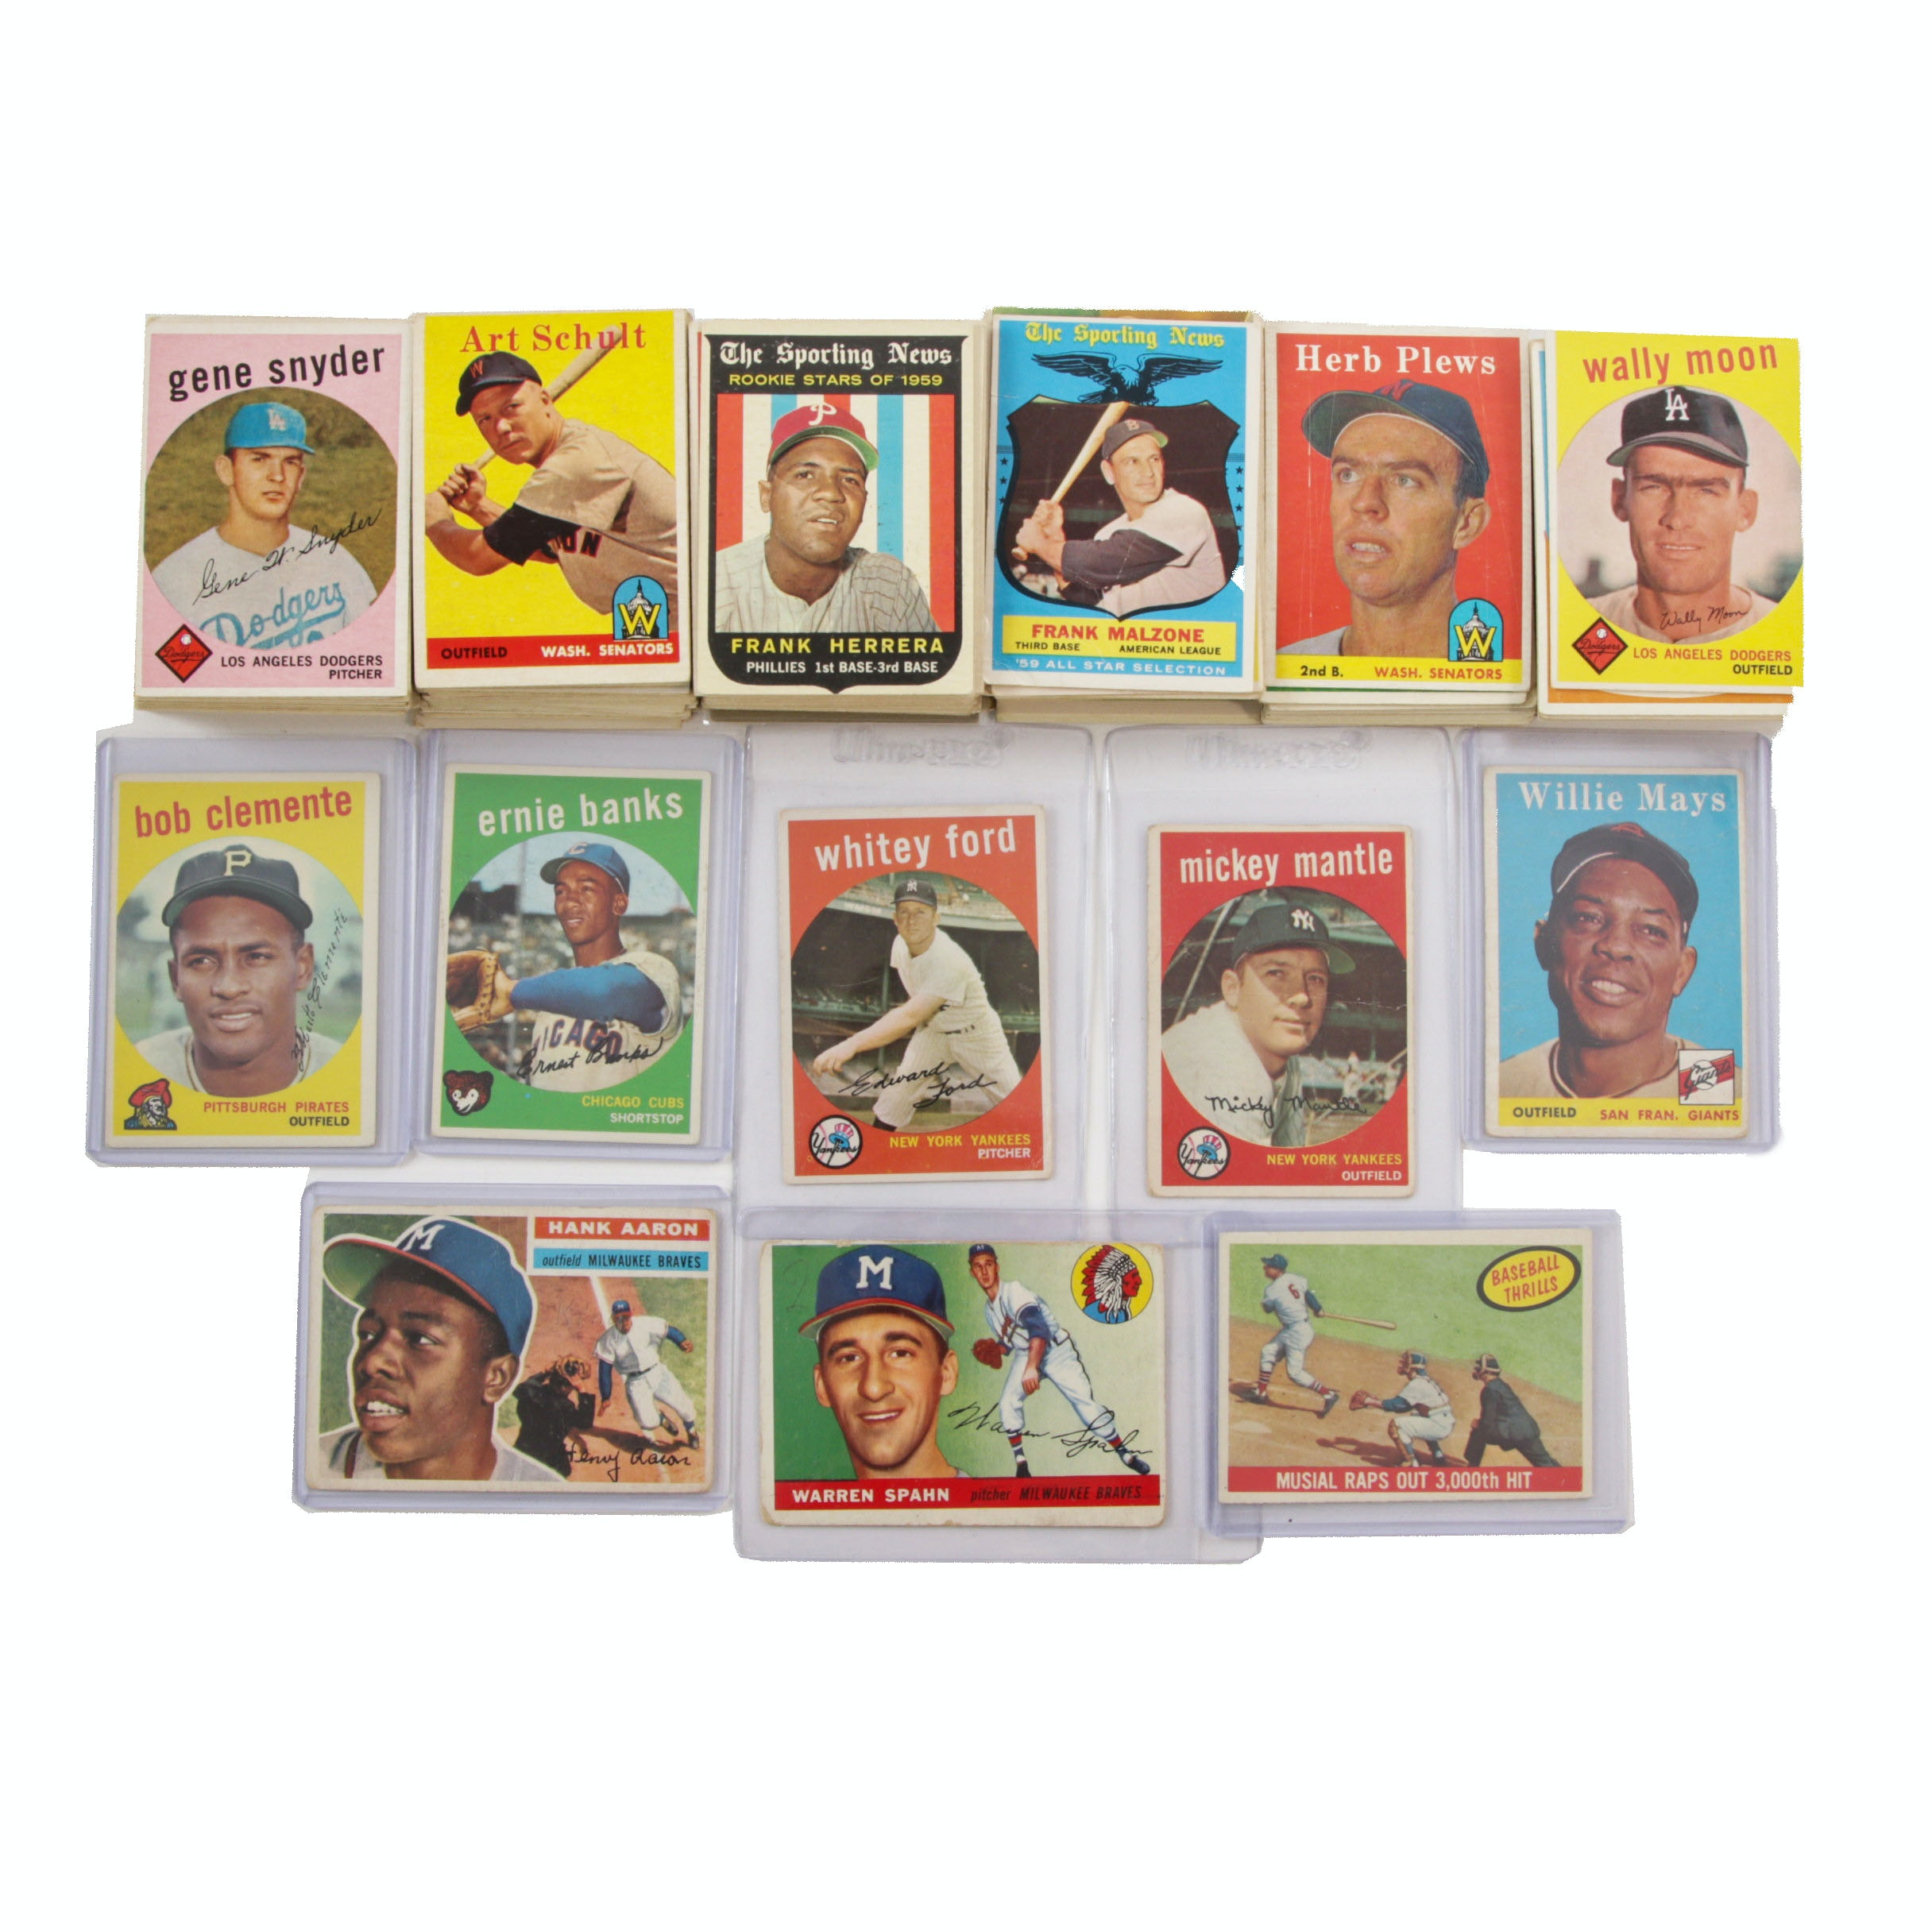 Vintage Baseball Cards from 1950s to 1961 with 1958 Willie Mays #5